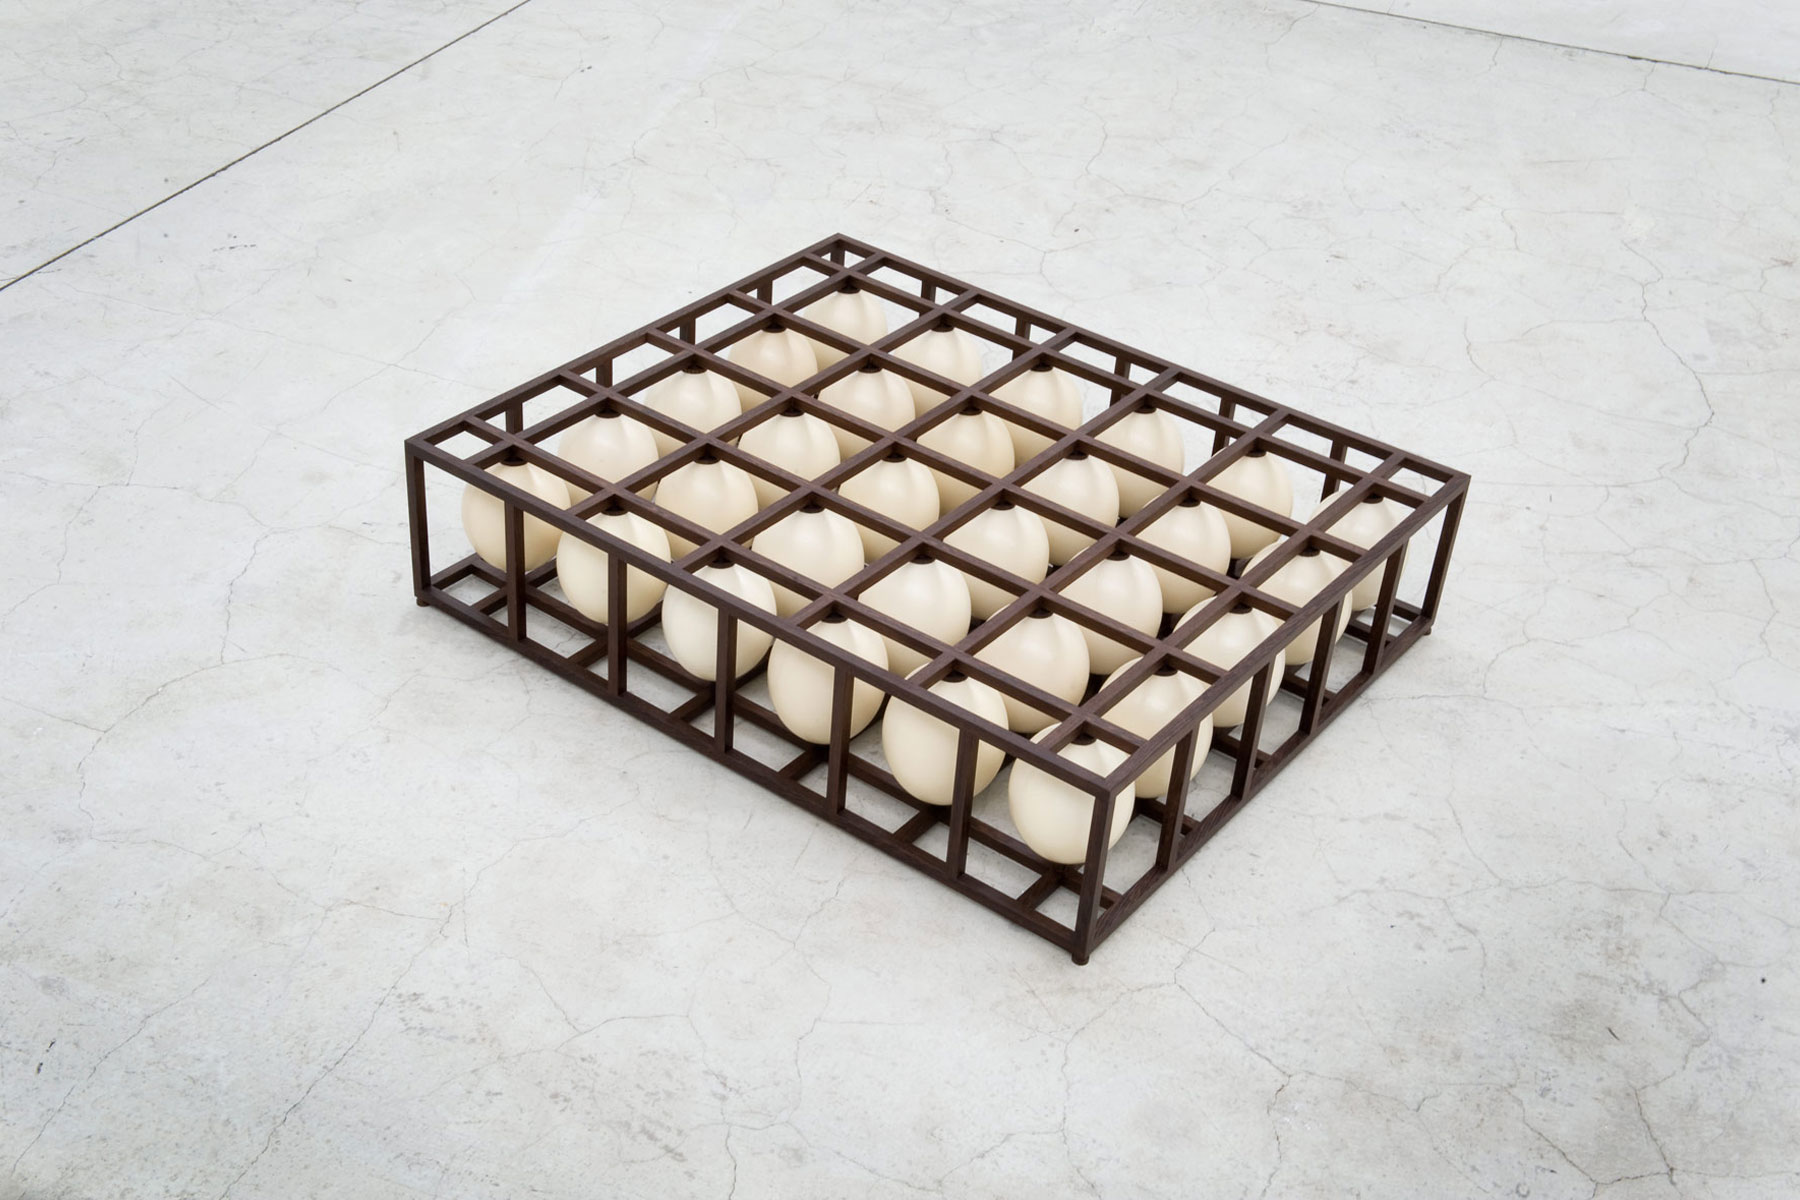 Alastair Mackie|So Linear|2011|egg|lattice|sculpture